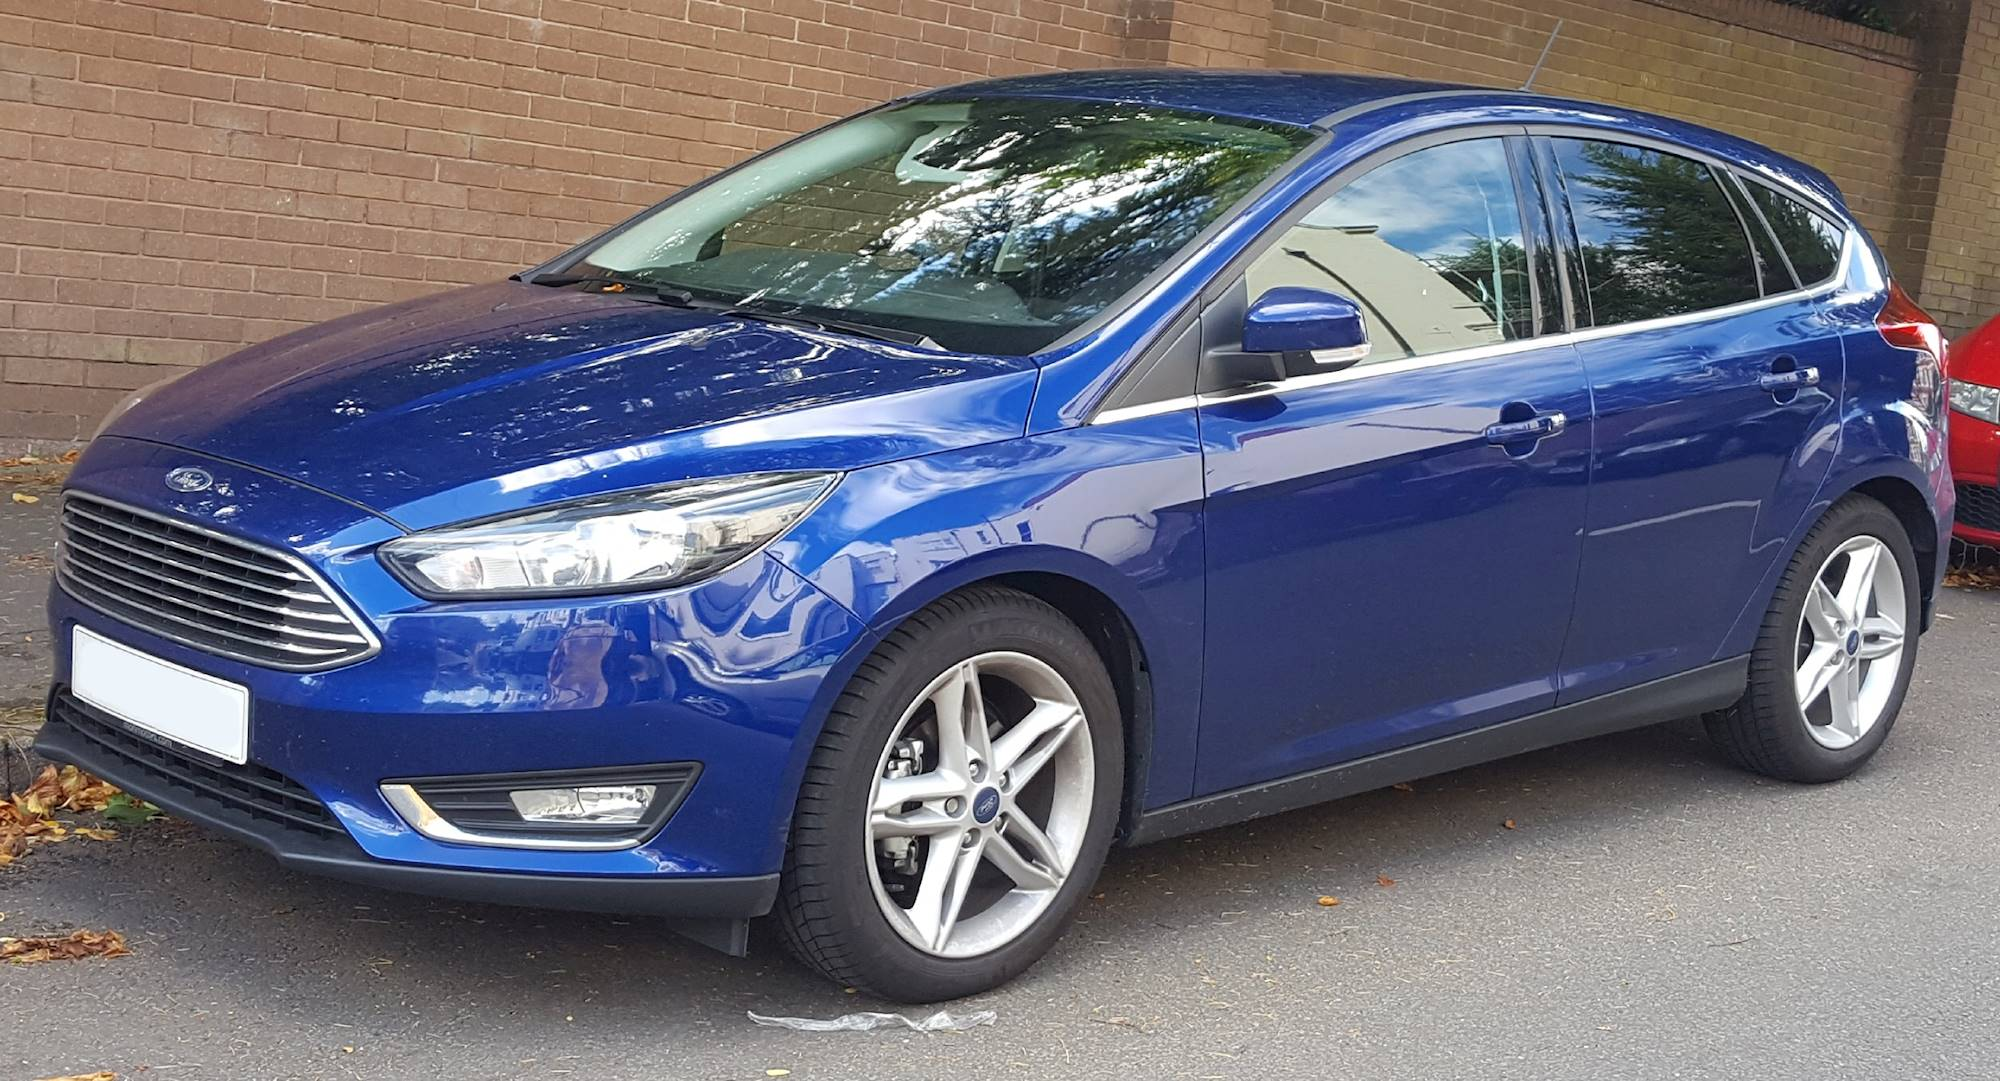 2017 Ford Focus S Sedan 2 0l Ffv Manual